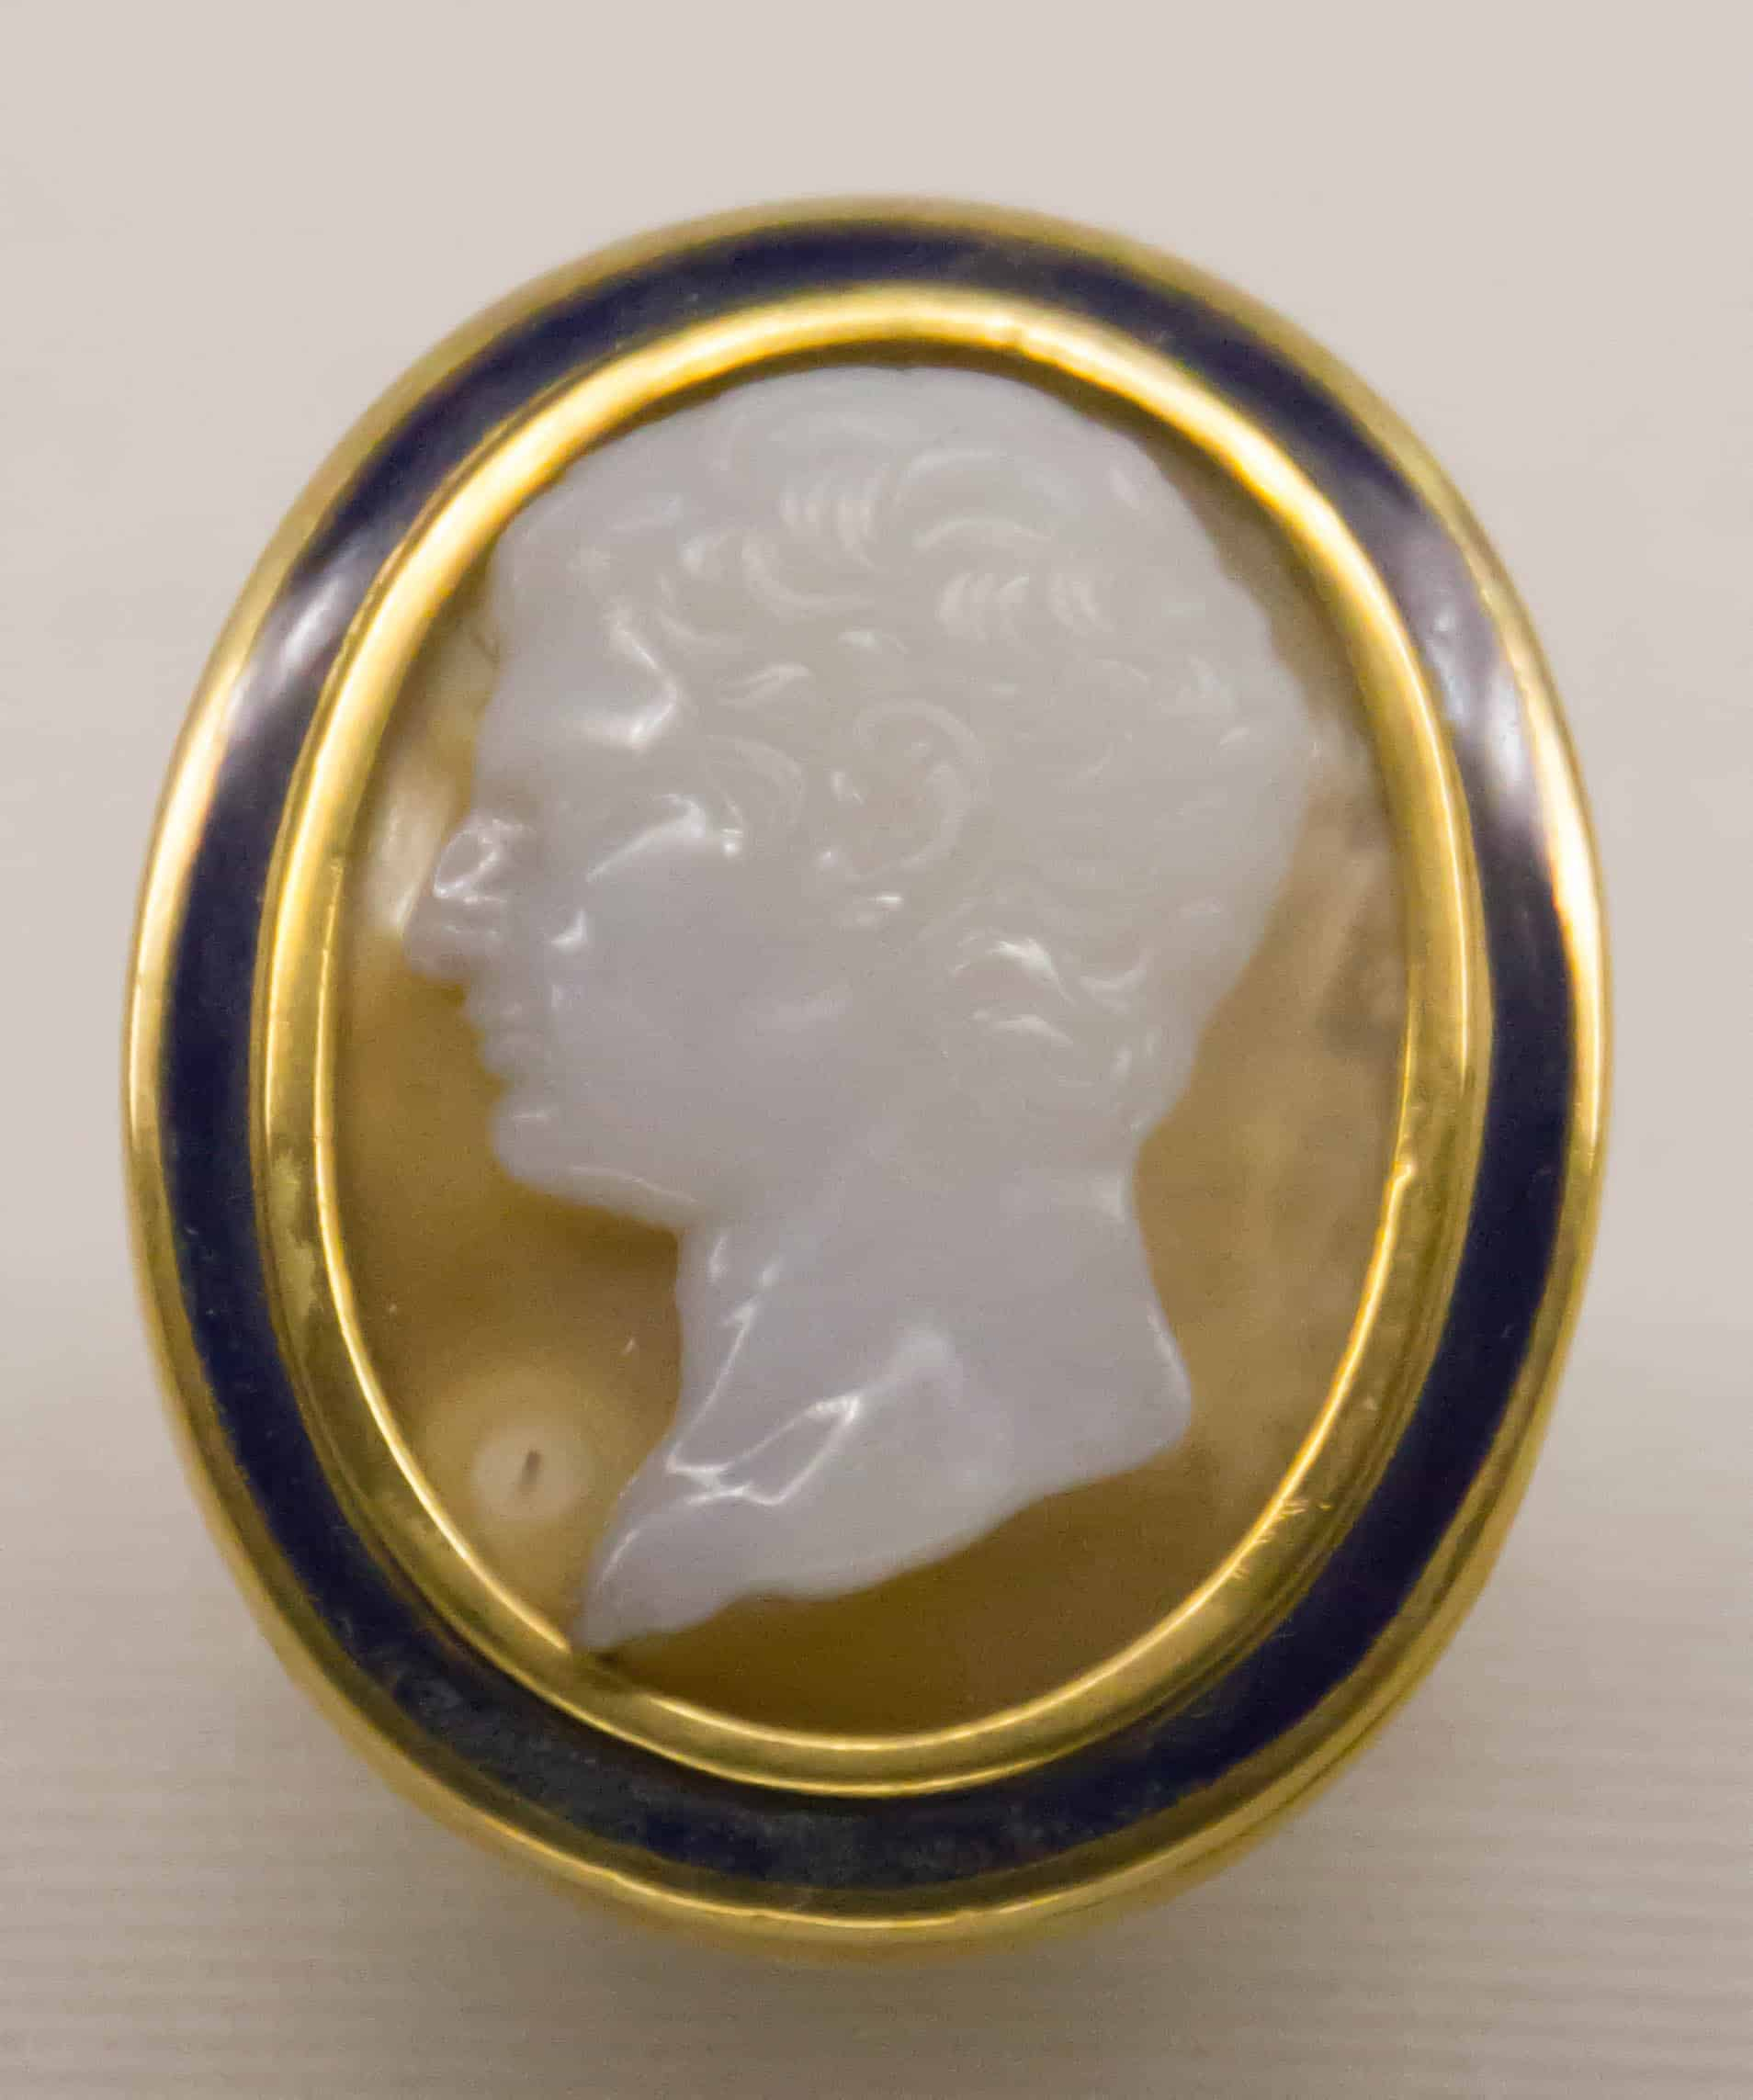 Cameo Italy Early 19th Cen Agate Enamel.jpg